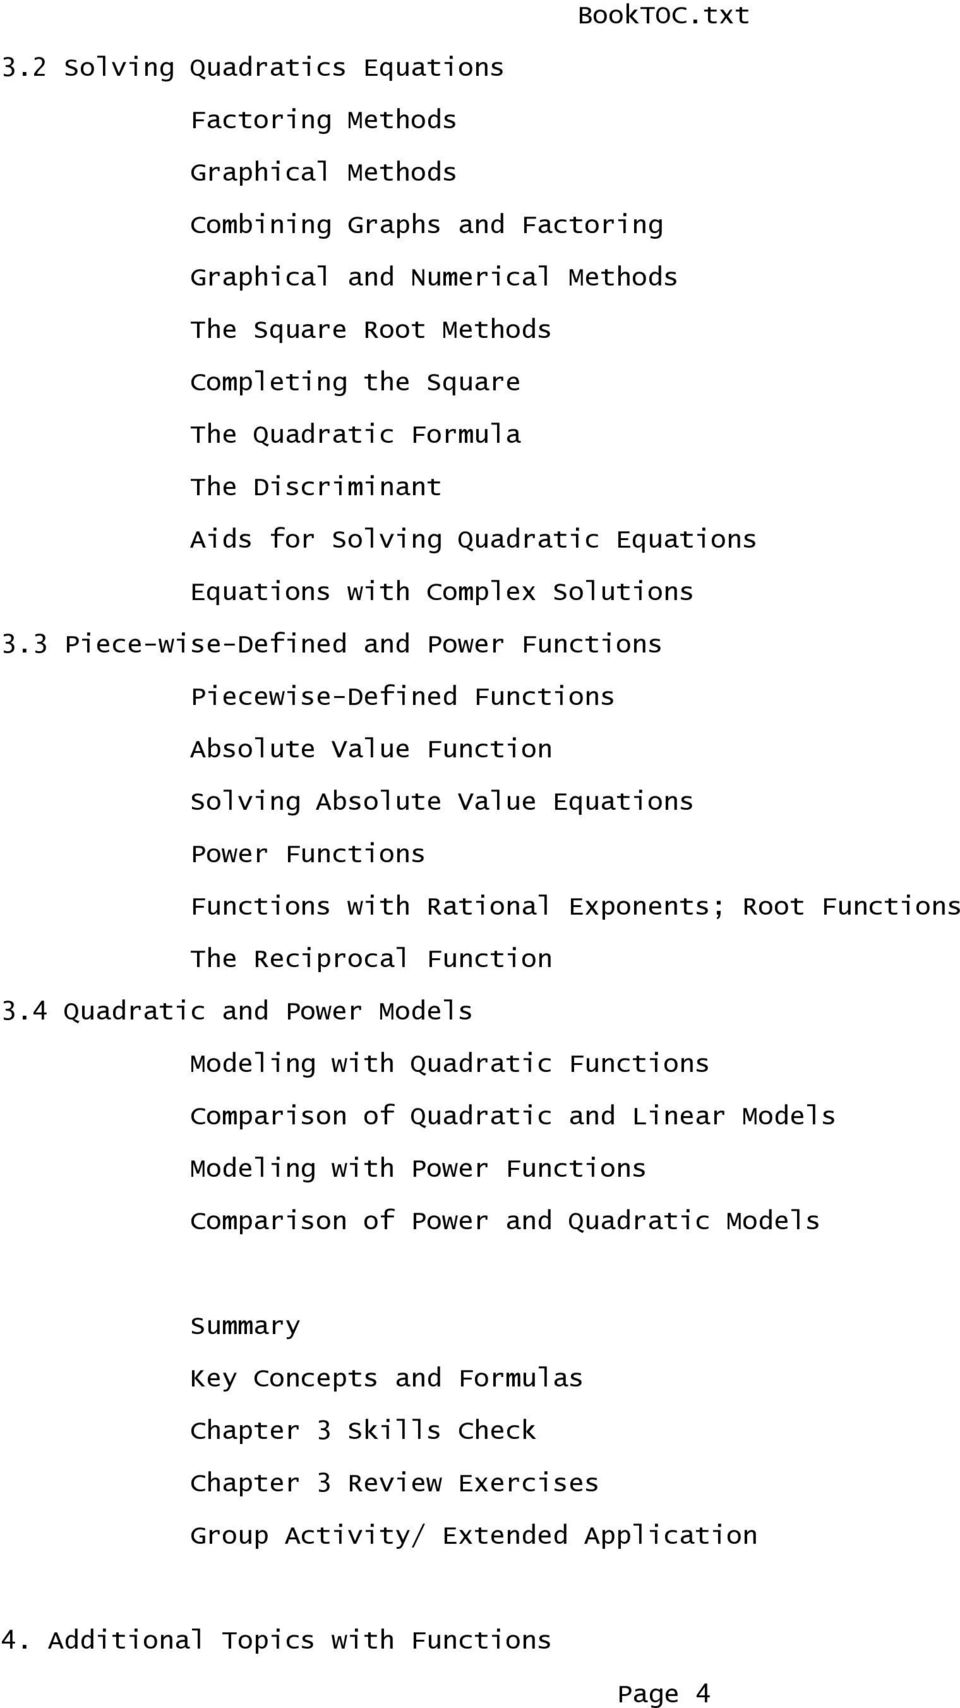 3 Piece-wise-Defined and Power Functions Piecewise-Defined Functions Absolute Value Function Solving Absolute Value Equations Power Functions Functions with Rational Exponents; Root Functions